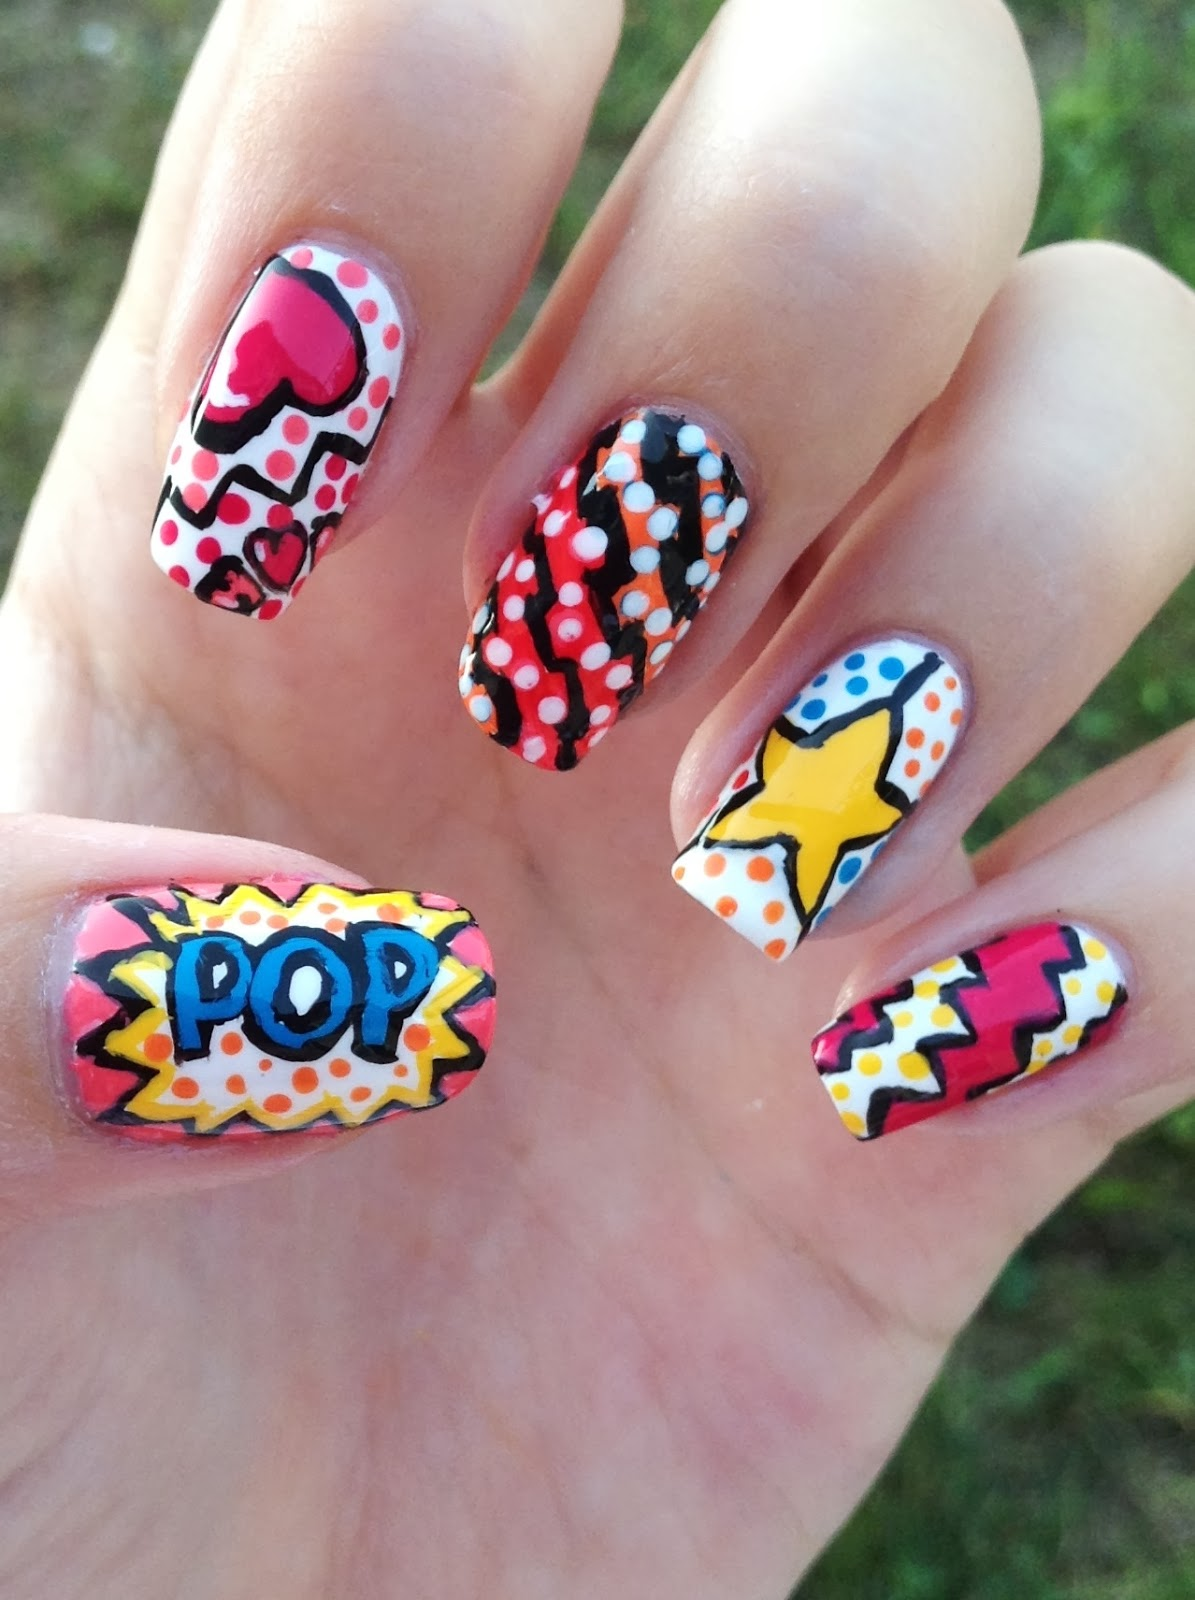 Nails By Bayles August Challenge Bold Nail Art